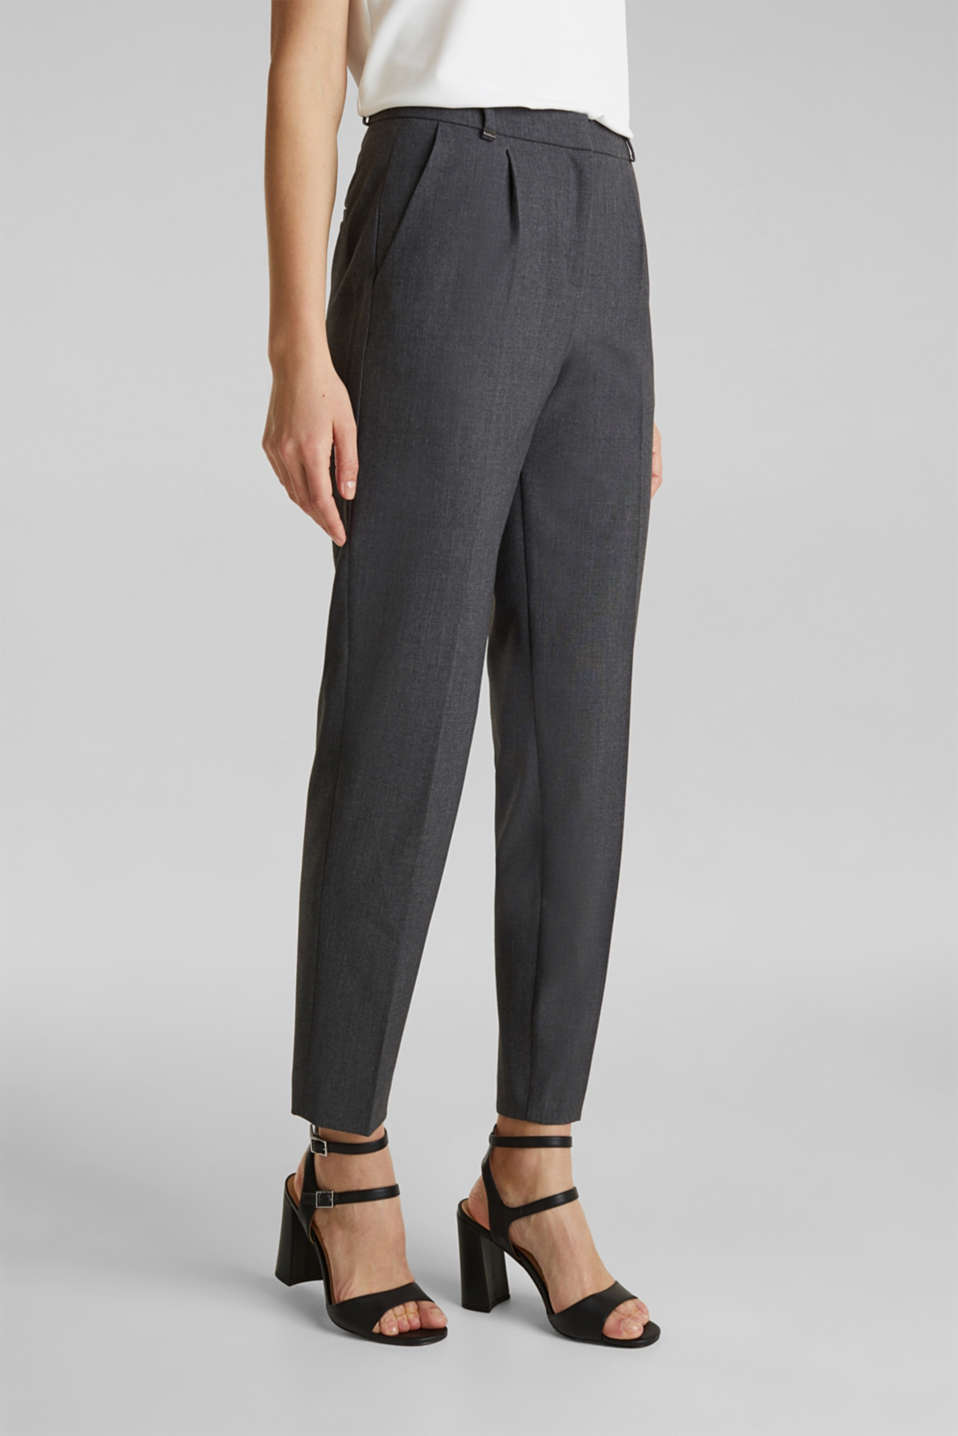 Esprit - PURE BUSINESS Mix + Match Hose